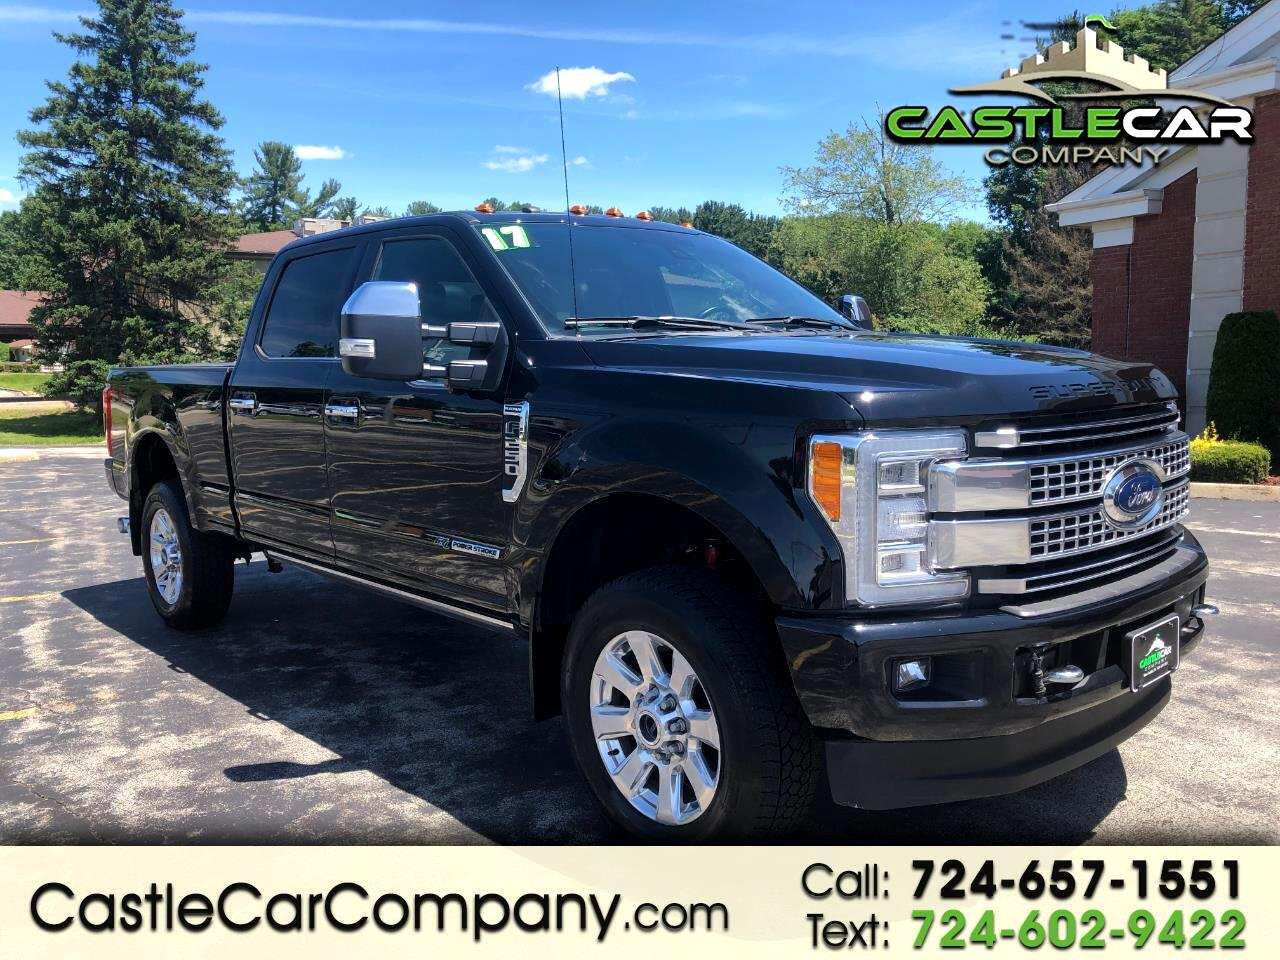 2017 Ford Super Duty F-250 SRW PLATINUM 4WD CREW CAB WITH ULTIMATE PACKAGE